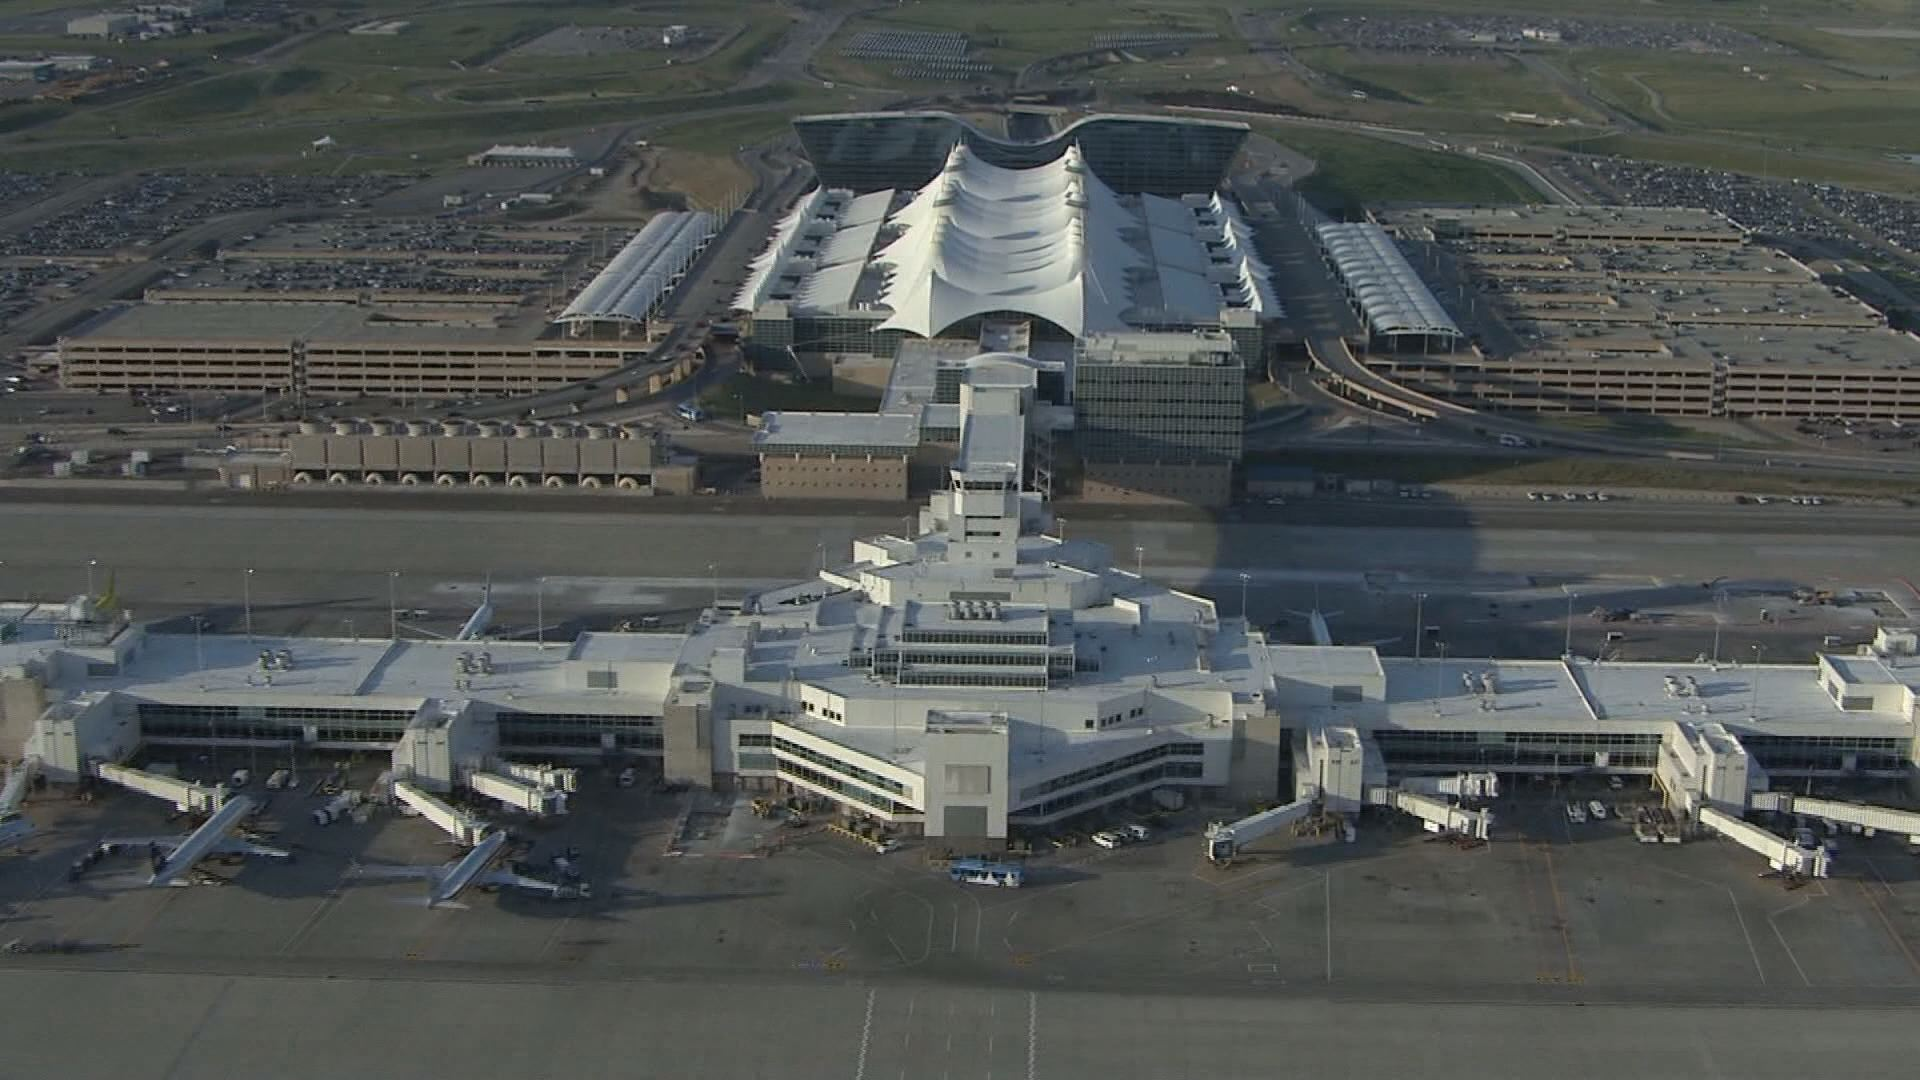 denver international airport failure 2 background the city and county of denver have built a massive new airport, the new denver international airport it extends over 13,568 hectares (about 53 square miles) has 3.